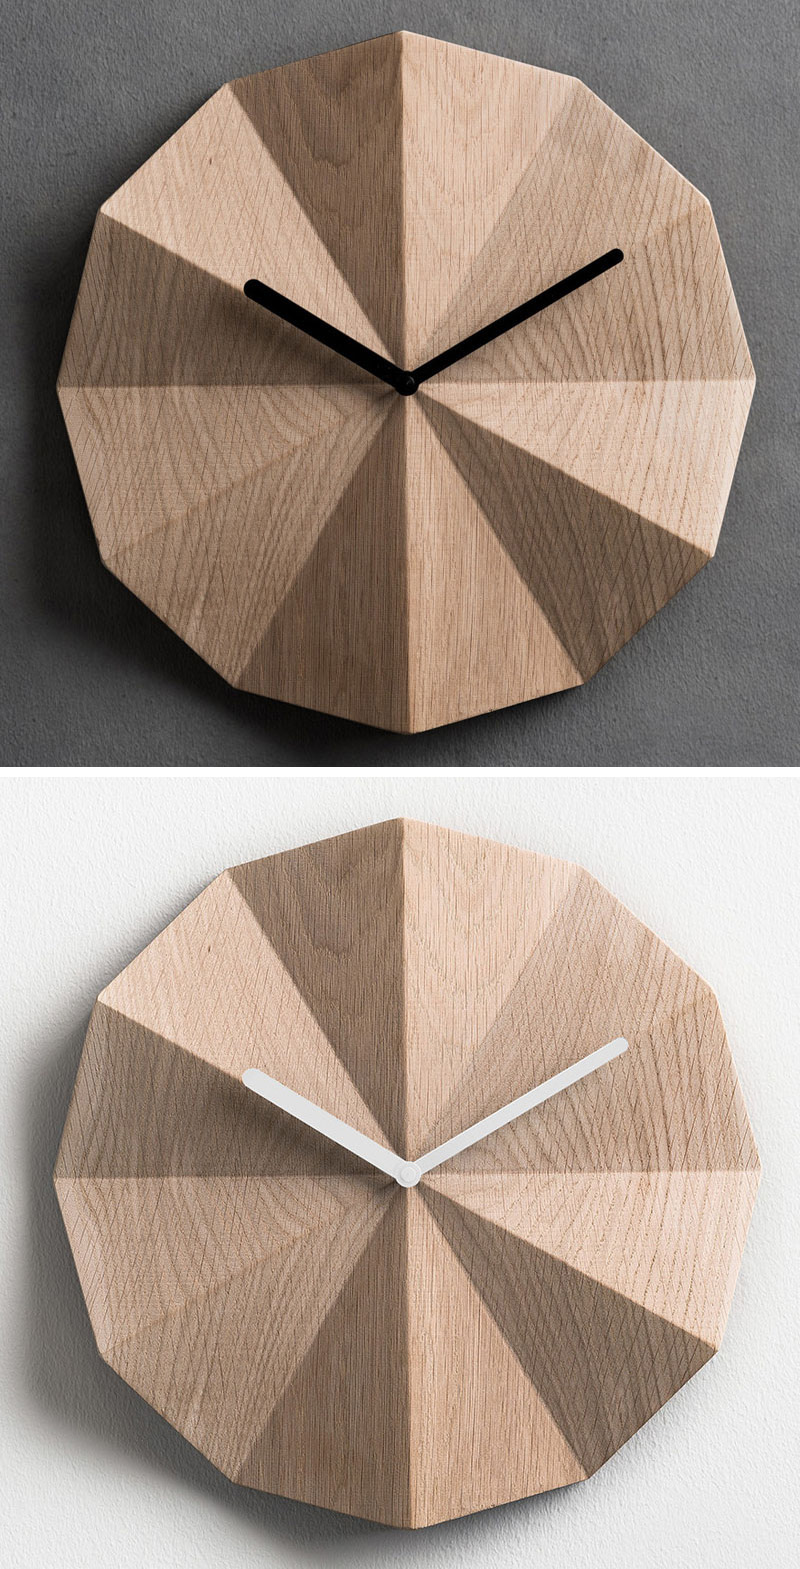 The folds on the surface of these modern wood wall clocks create shadows that change throughout the day as light moves throughout the room.